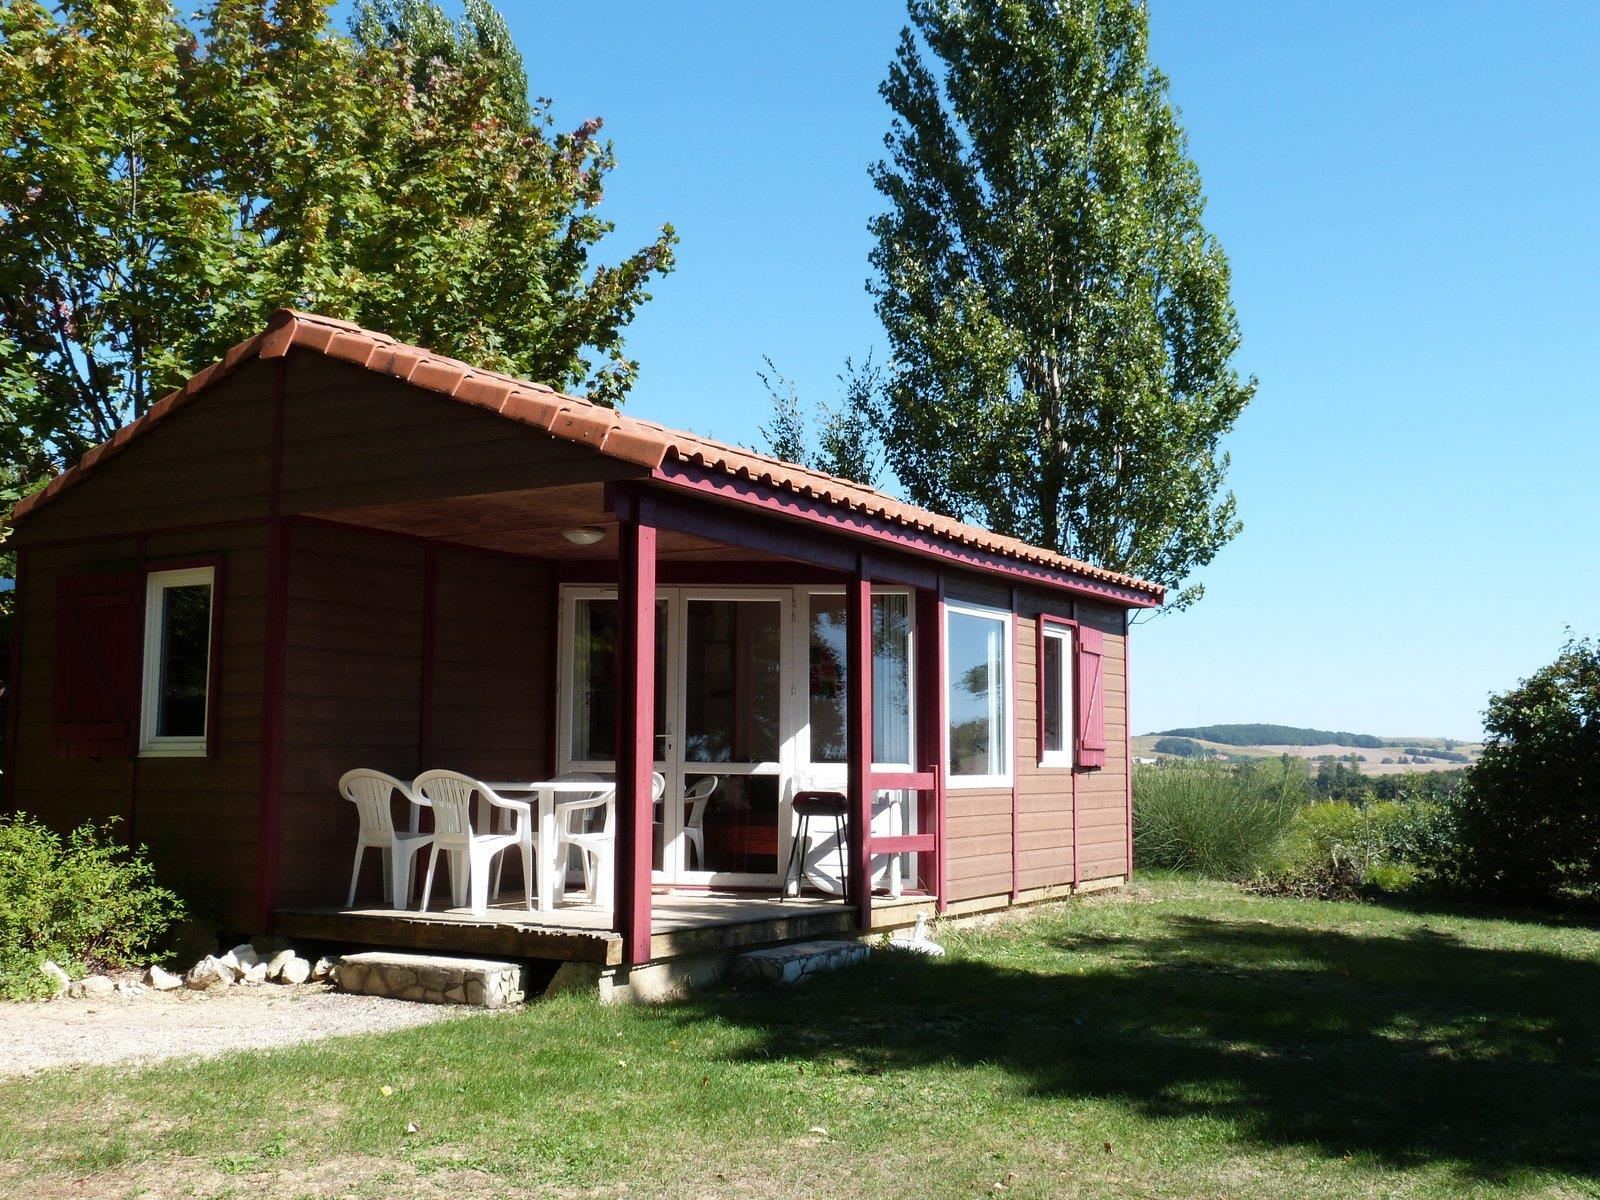 Huuraccommodaties - Chalet - Weekly Rental - Les Chalets des Mousquetaires